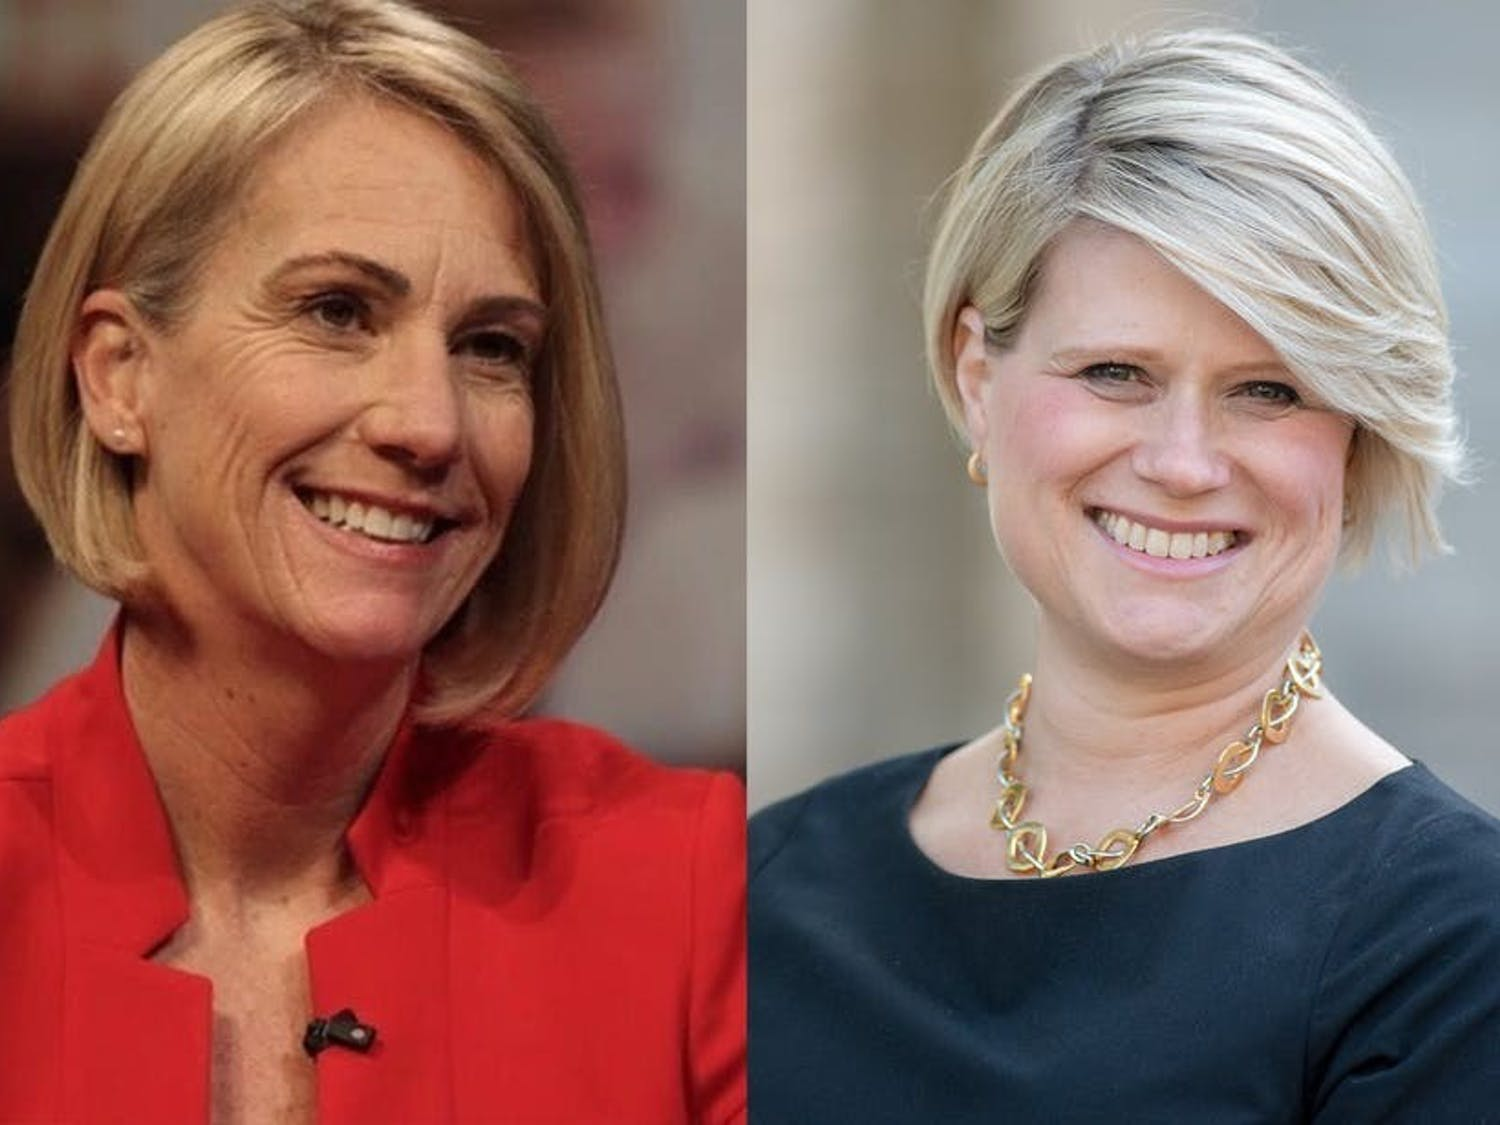 Jen Mangrum (left) and Catherine Truitt (right) are the two candidates for the new state superintendent of public instruction. Mangrum, the Democratic candidate, is an associate professor at UNC-Greensboro's School of Education and Catherine Truitt, the Republican candidate, is the chancellor at Western Governors University North Carolina.